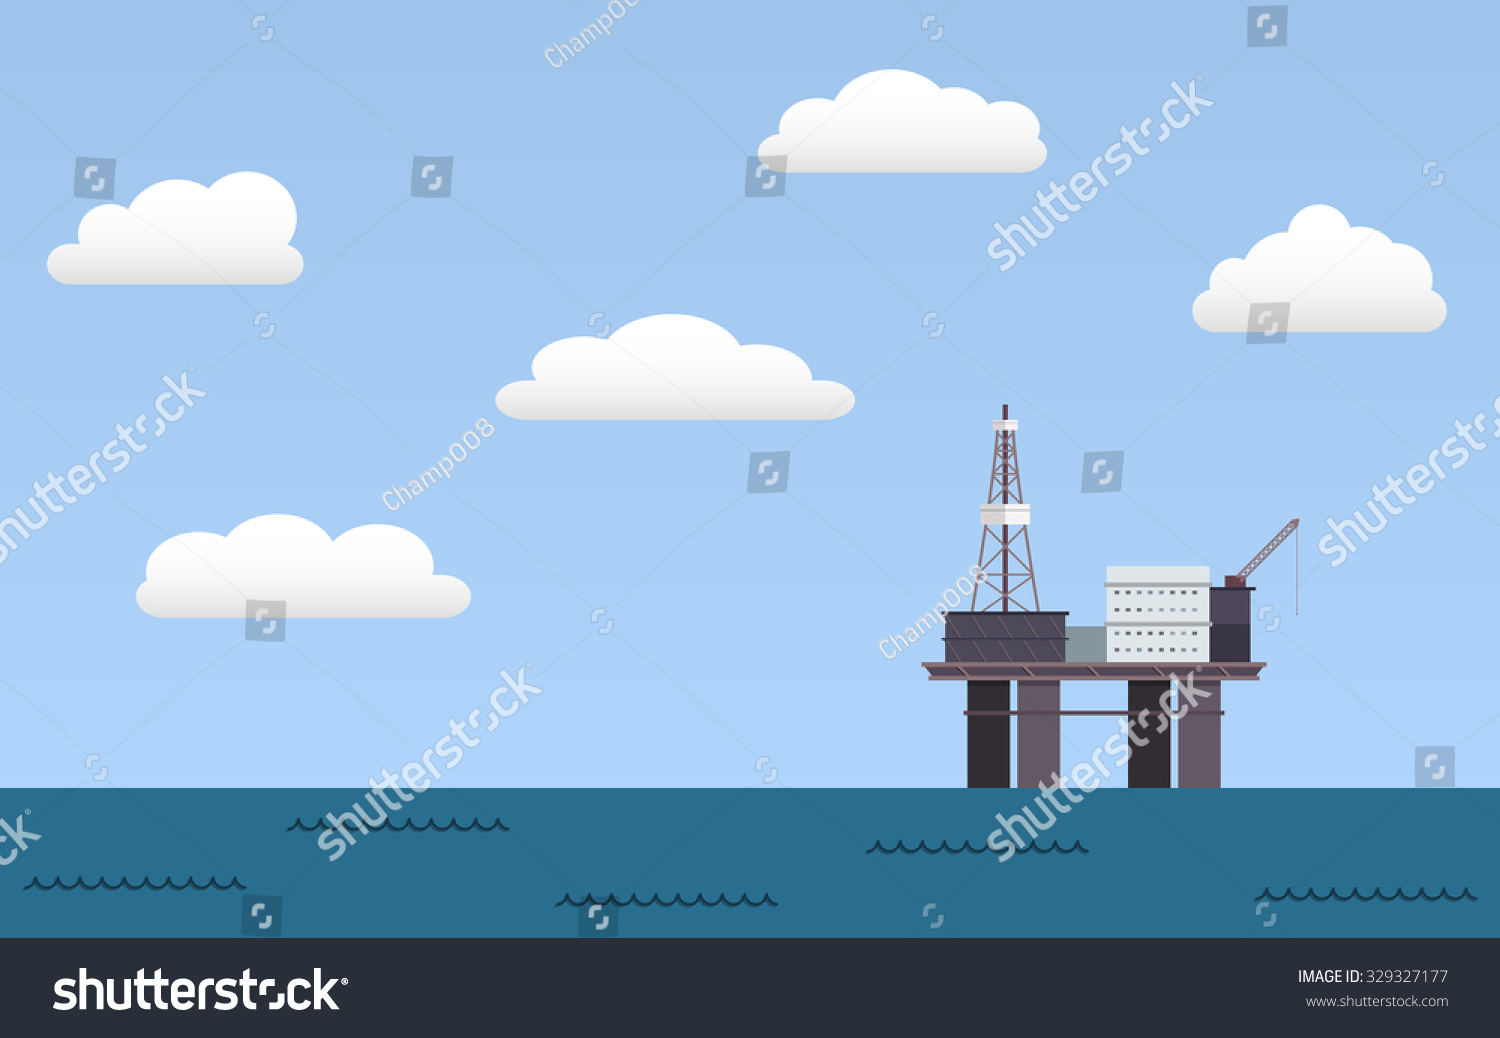 Ocean offshore oil rig drilling platform in flat icon design and blue ...